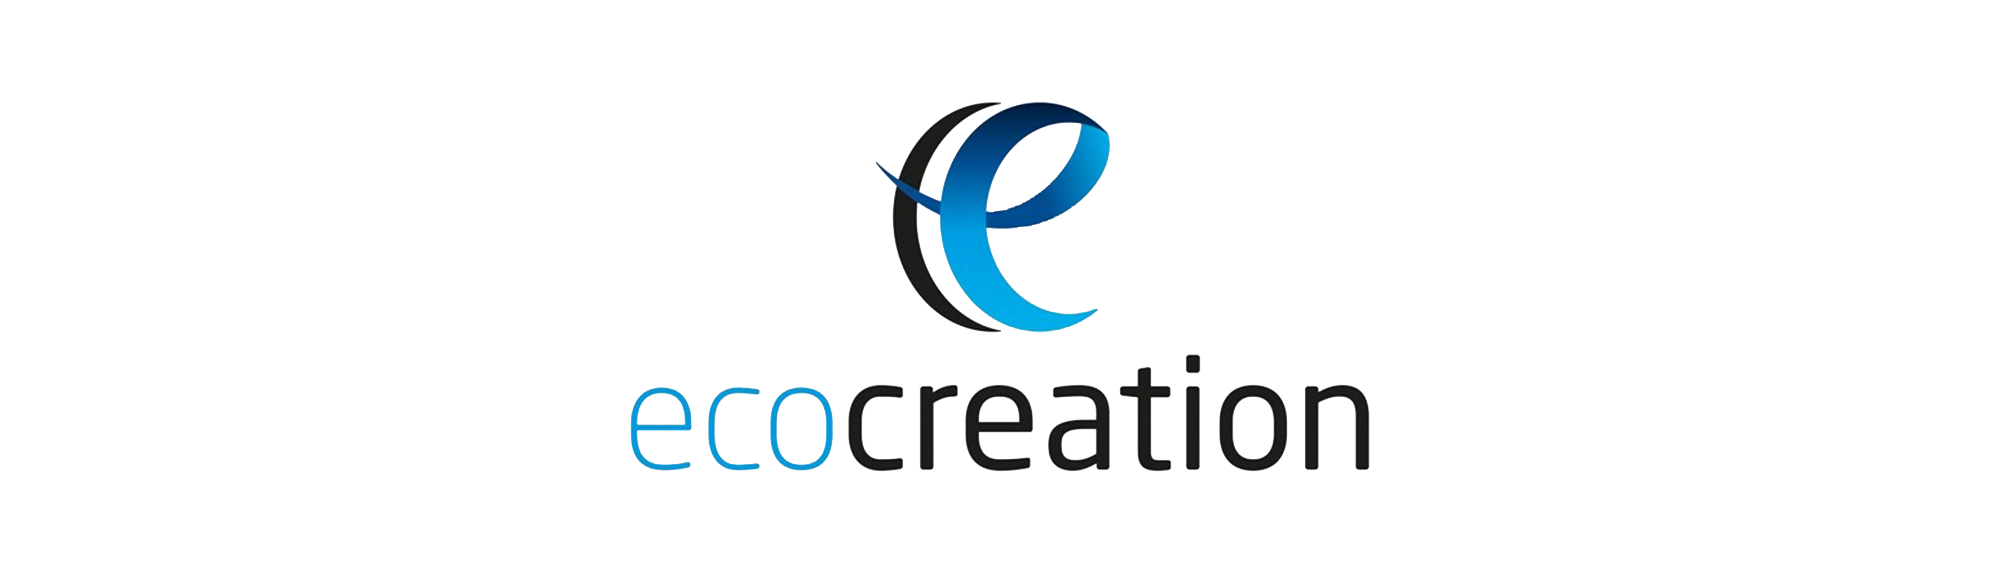 logo-eco-creation